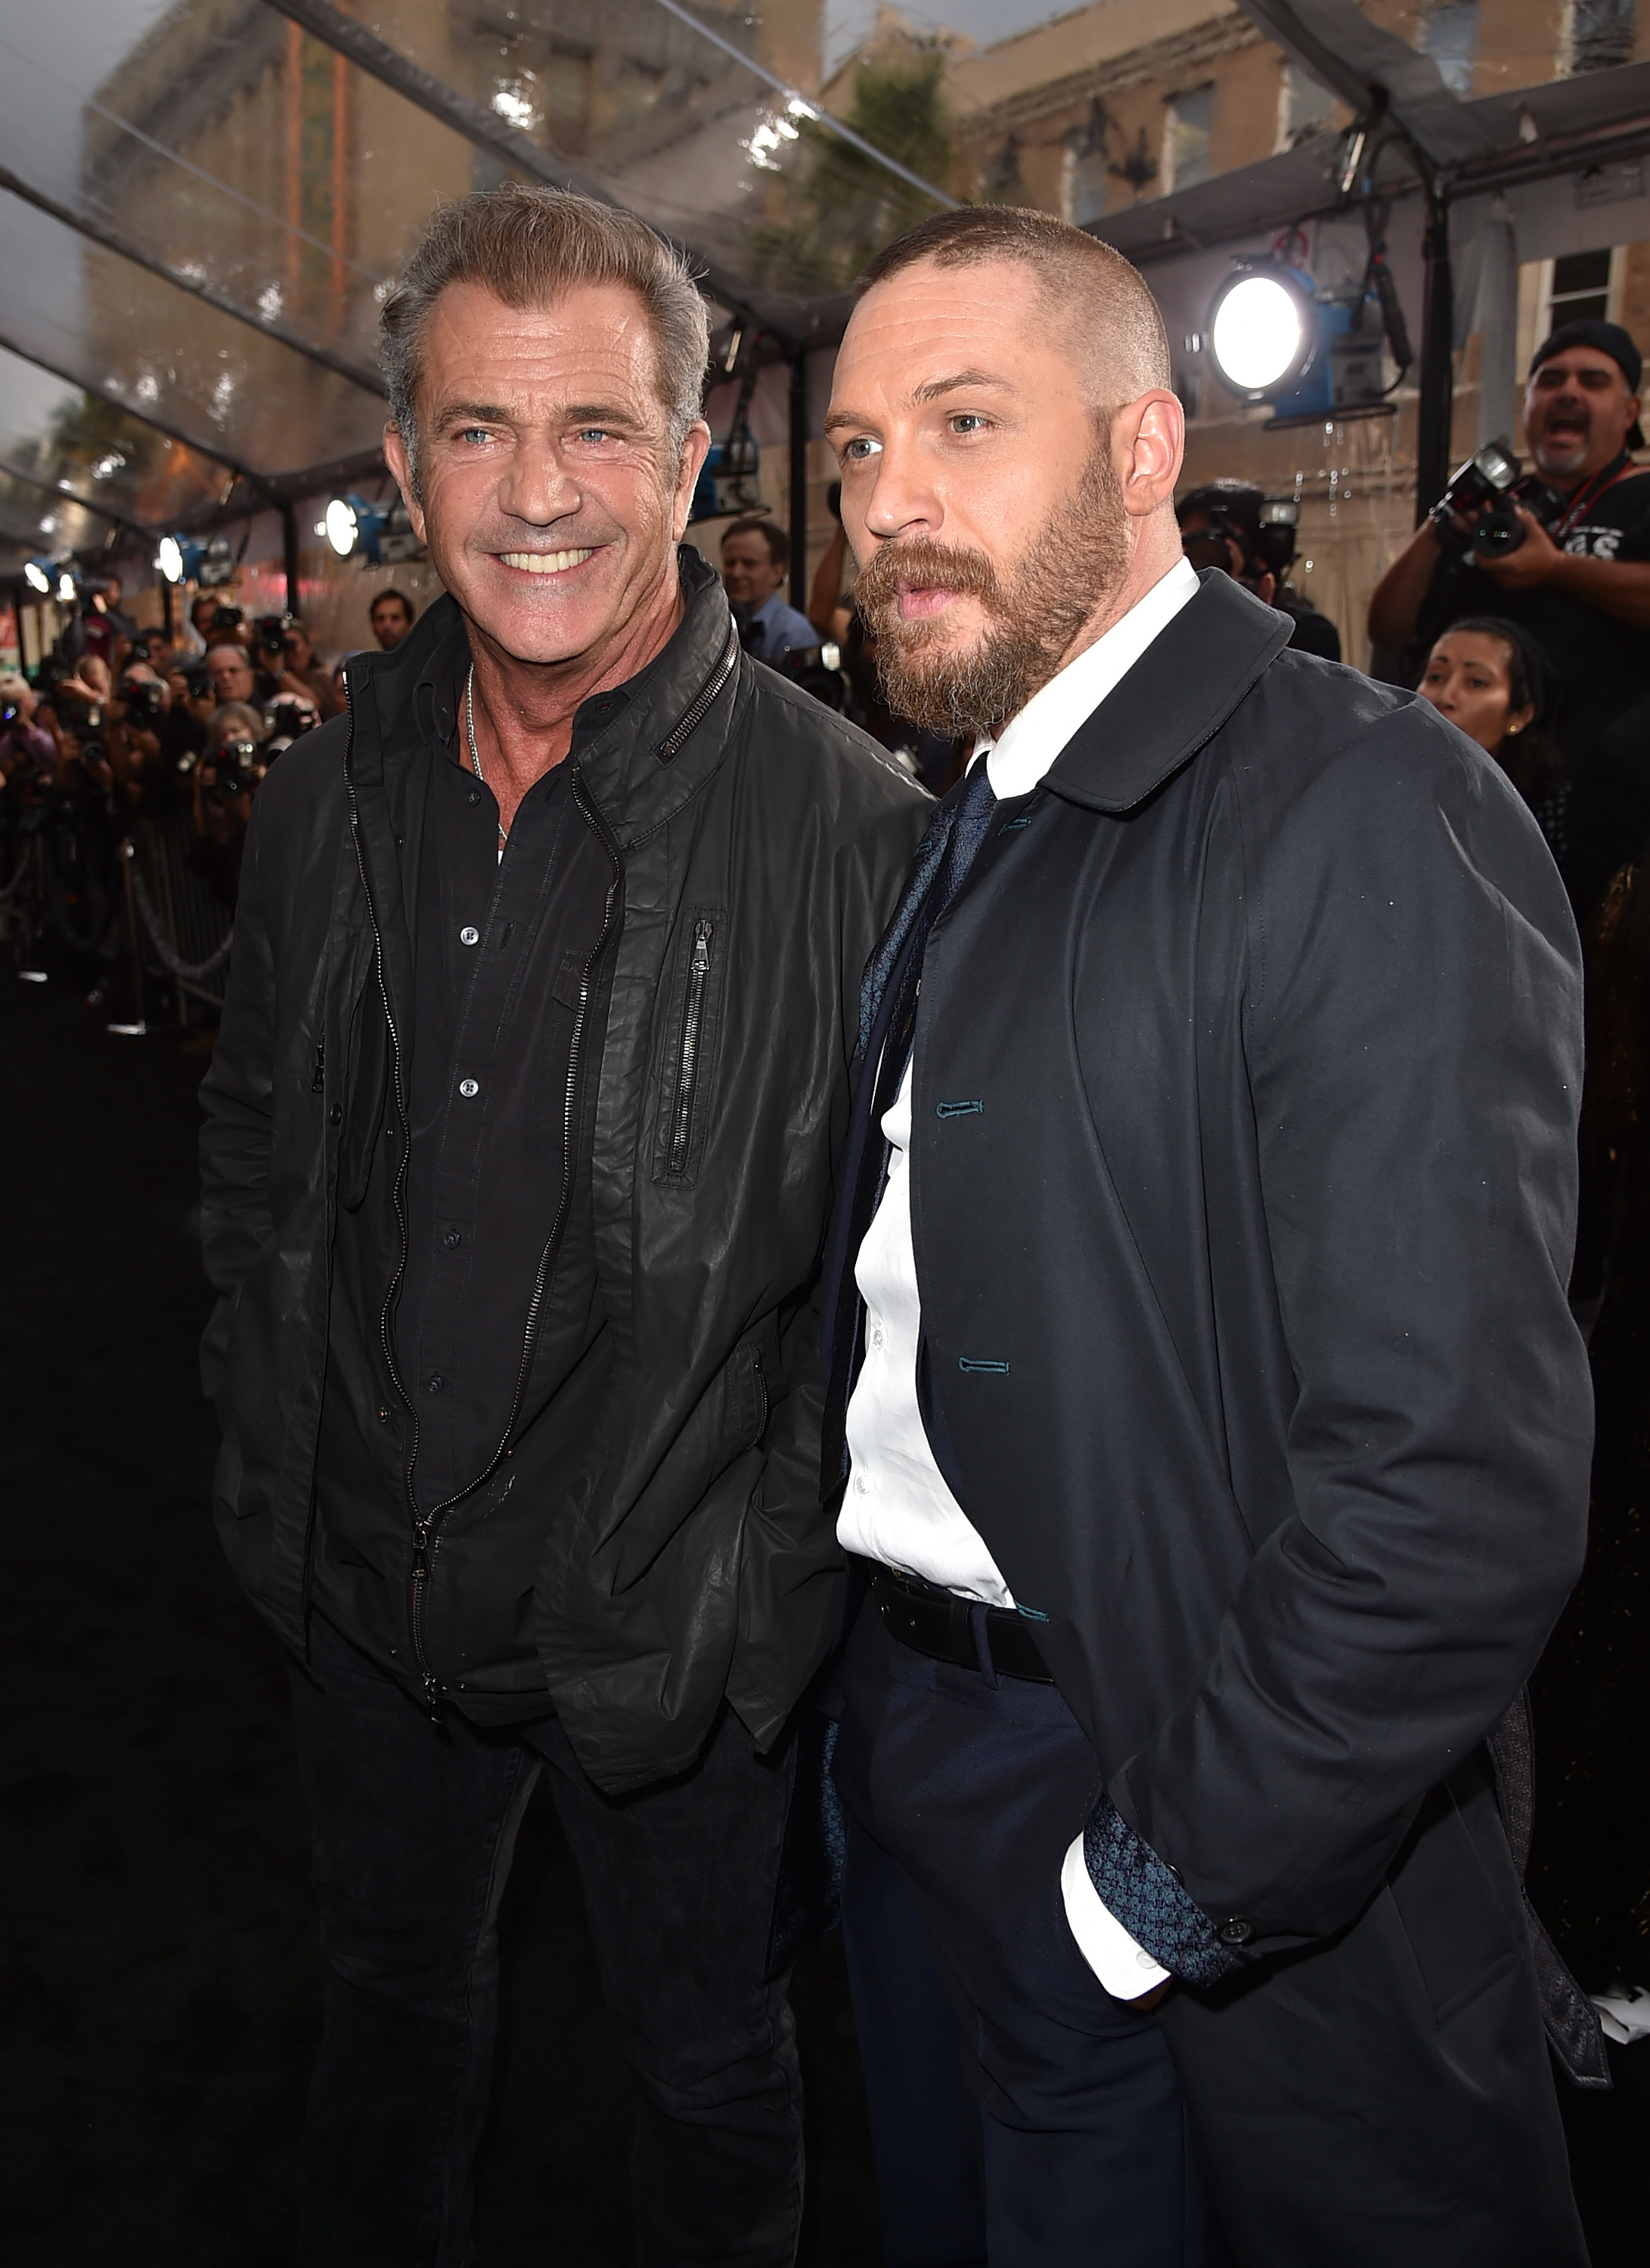 In no time, Tom Hardy will be on this list, but for now, Gibson's 30 year body of work makes him a strong 1 seed.